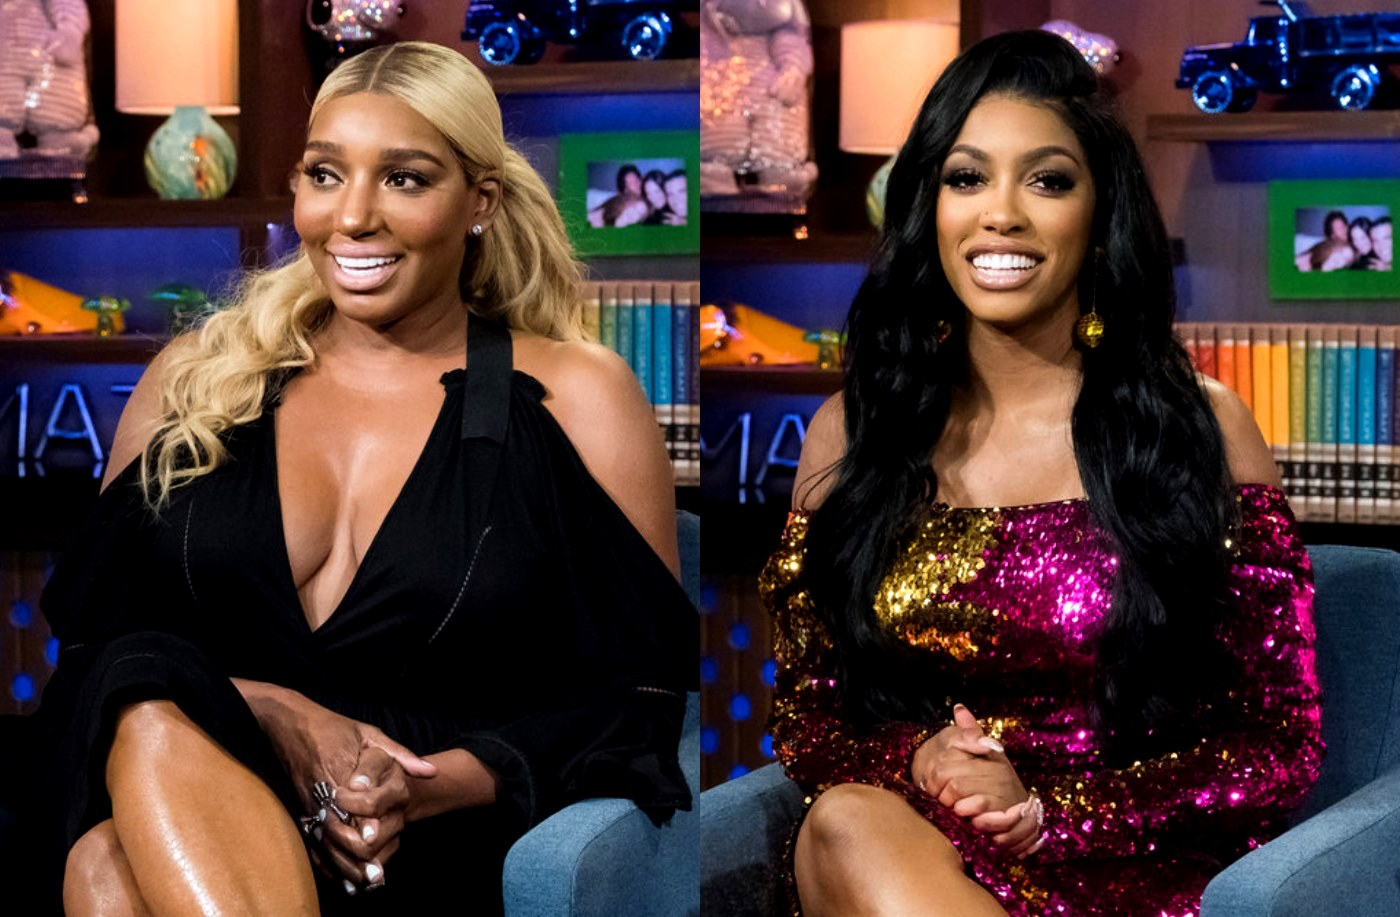 nene-leakes-responds-after-porsha-williams-makes-her-fat-shaming-texts-public